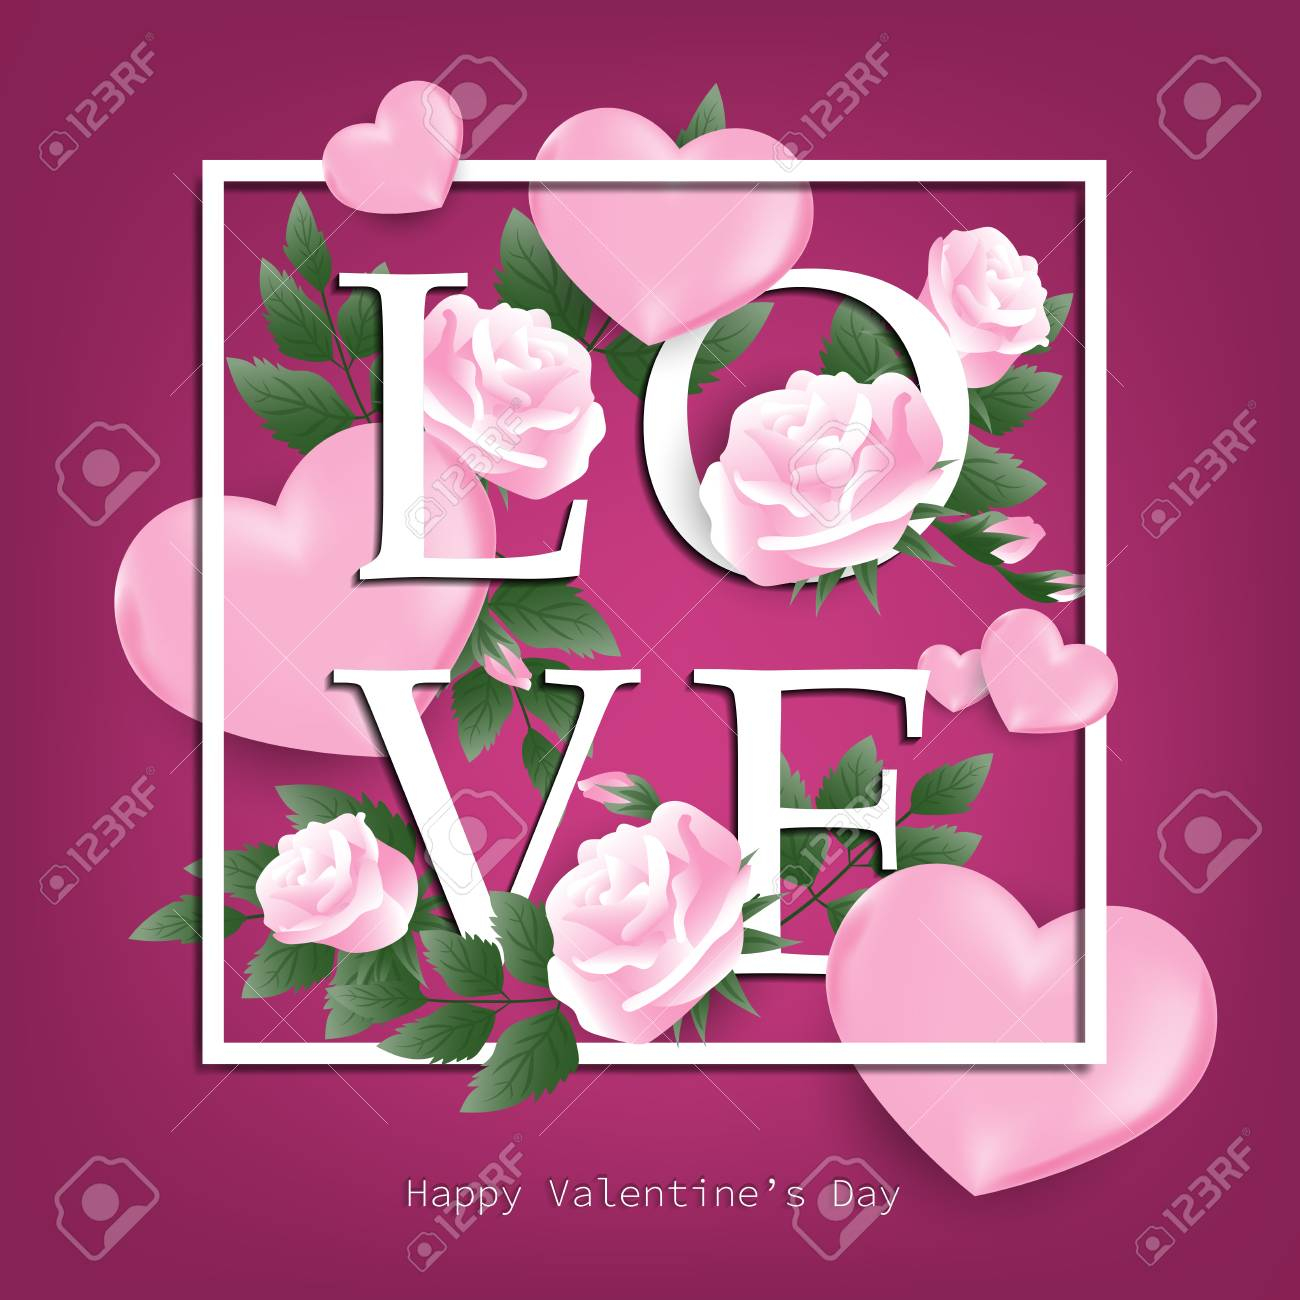 photo stock vector valentine s day background with pink rose and heart around love text and happy valentine s day text